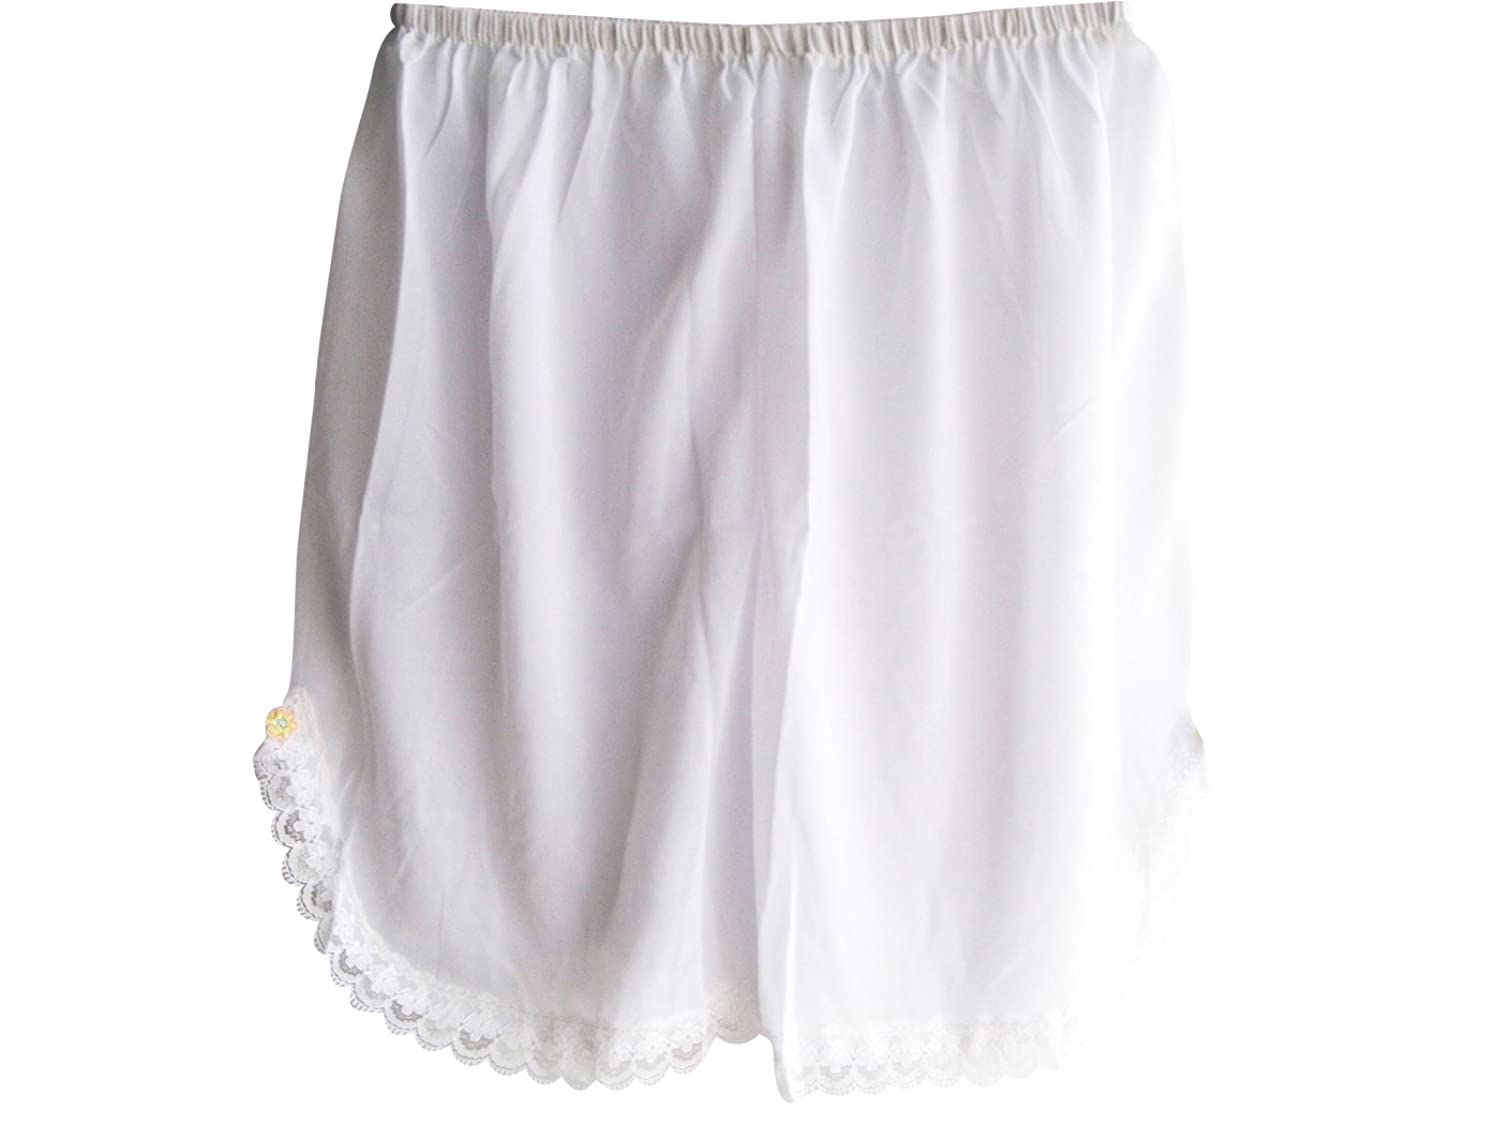 Damen Nylon Halb Slips Neu UPPNNWH White Half Slips Women Pettipants Lace